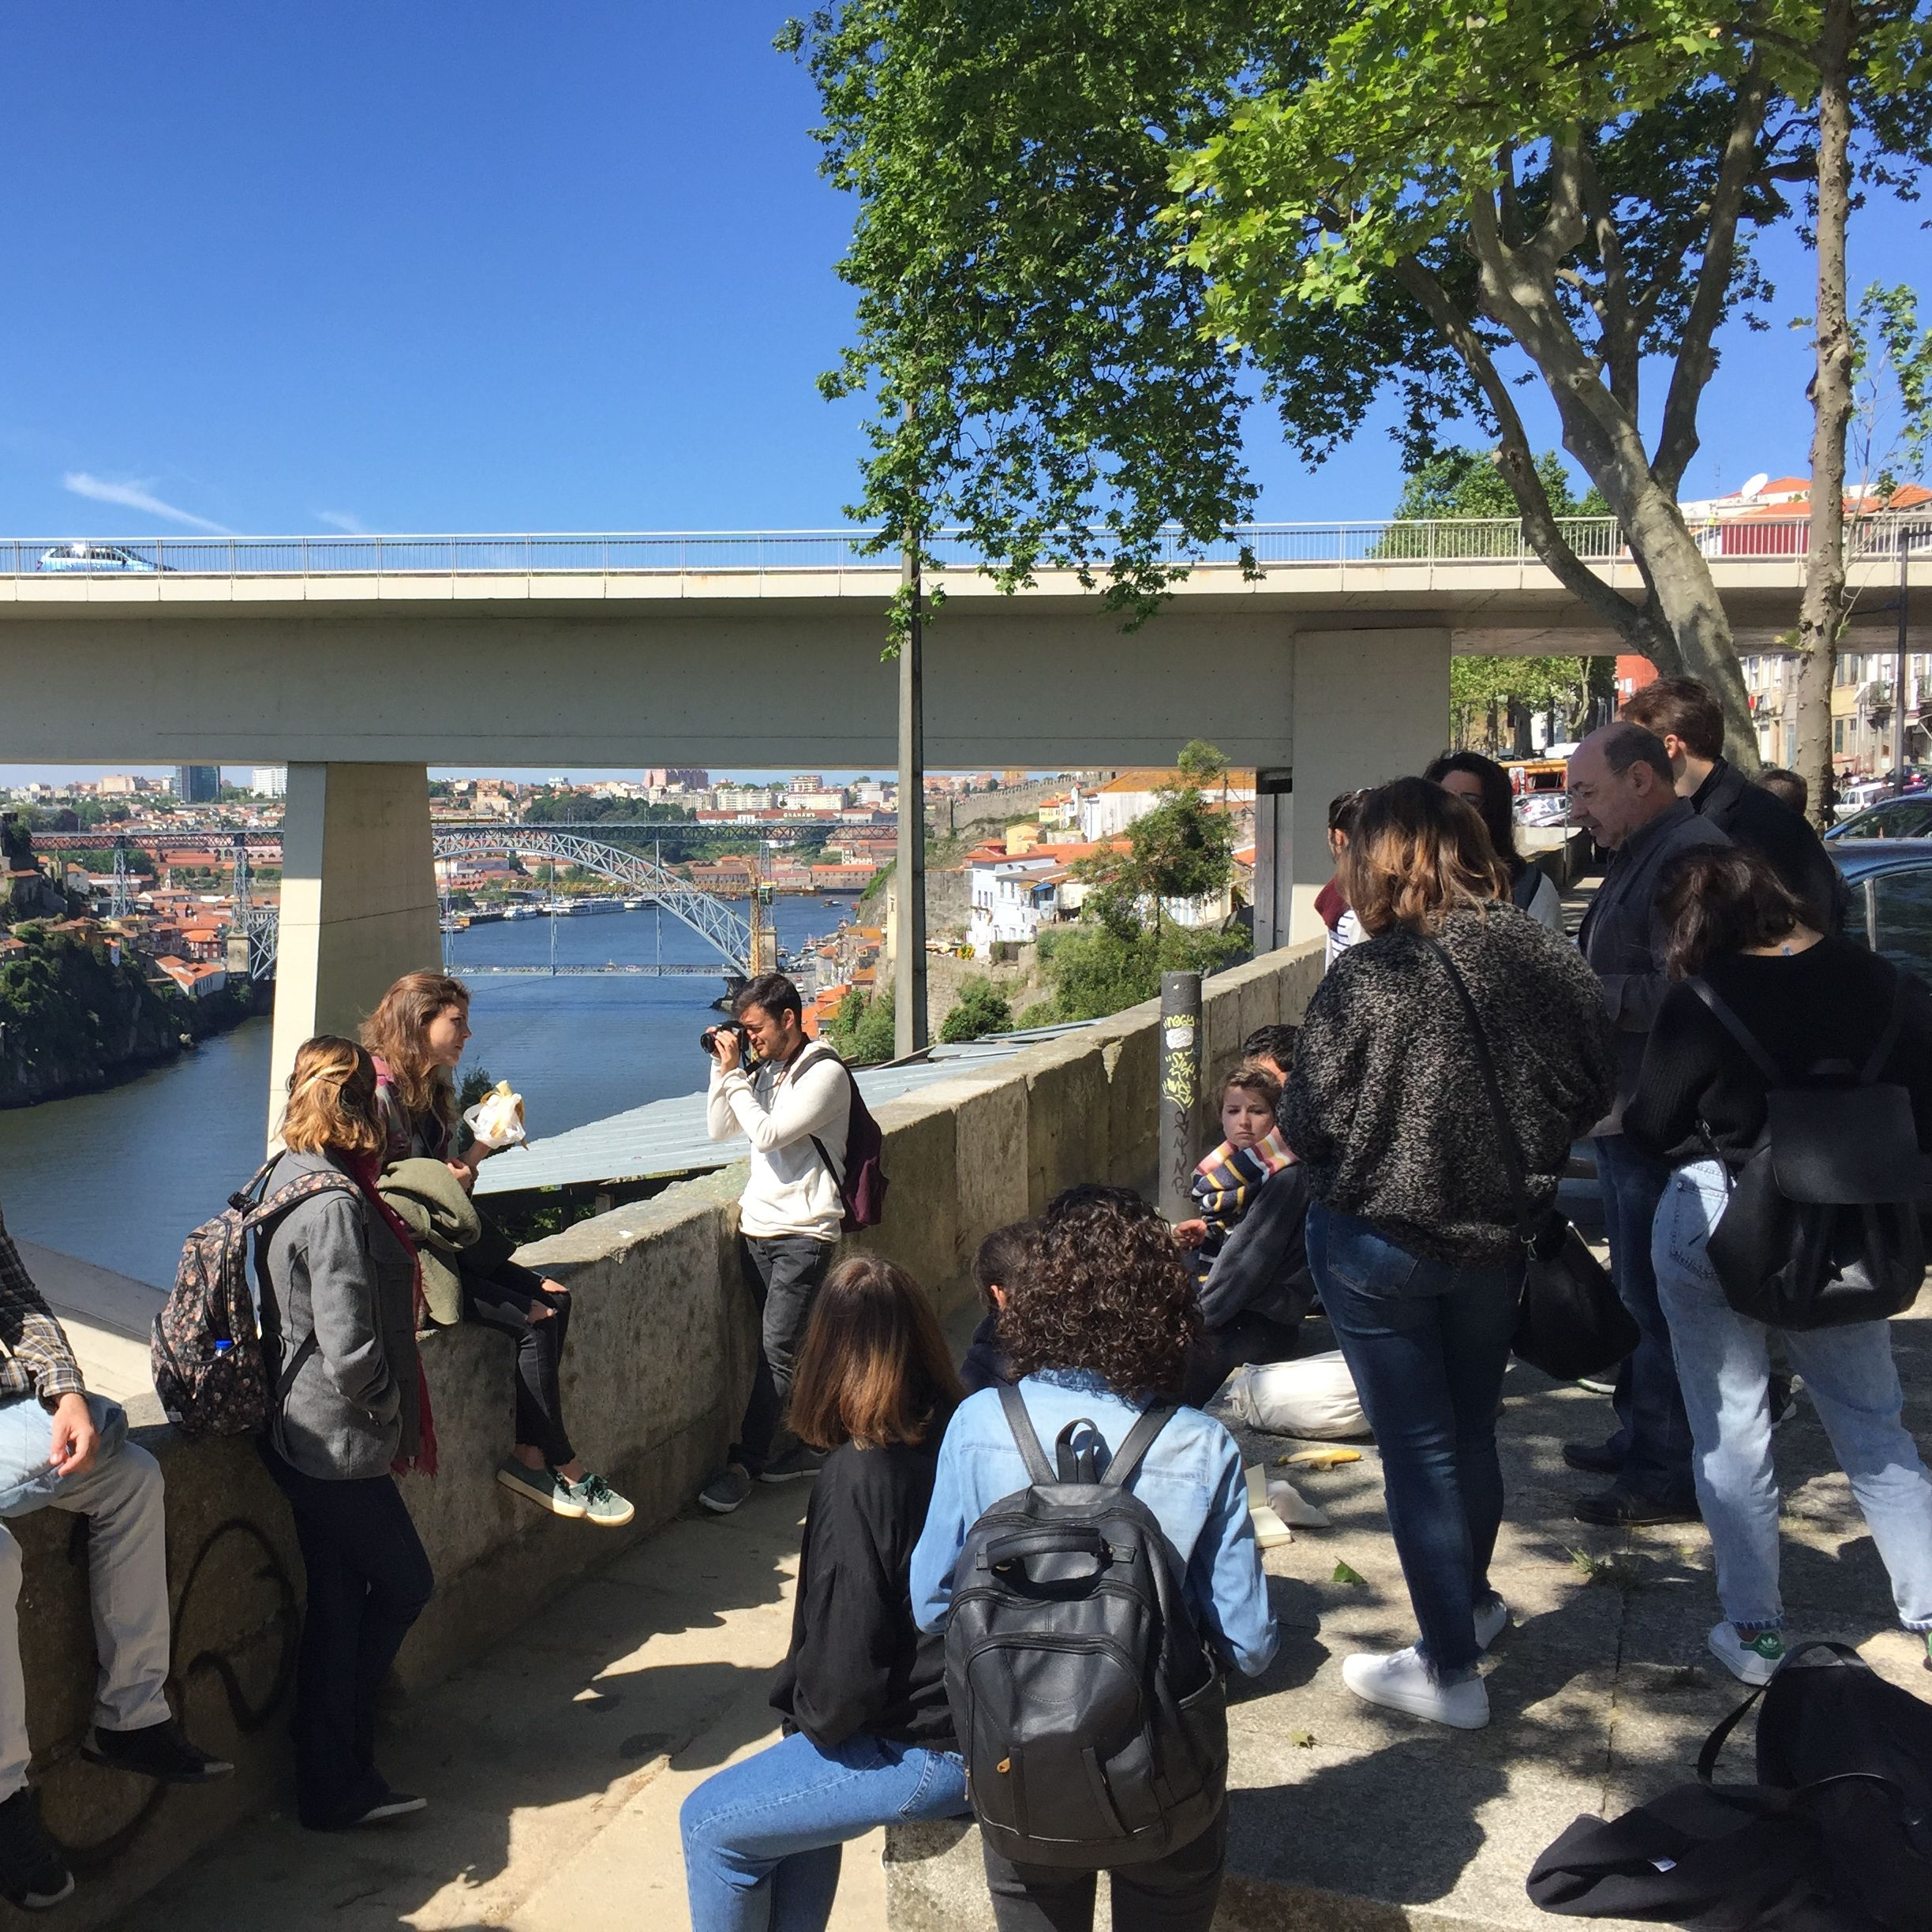 Architekturstudium in Porto: Meine Kurse an der FAUP